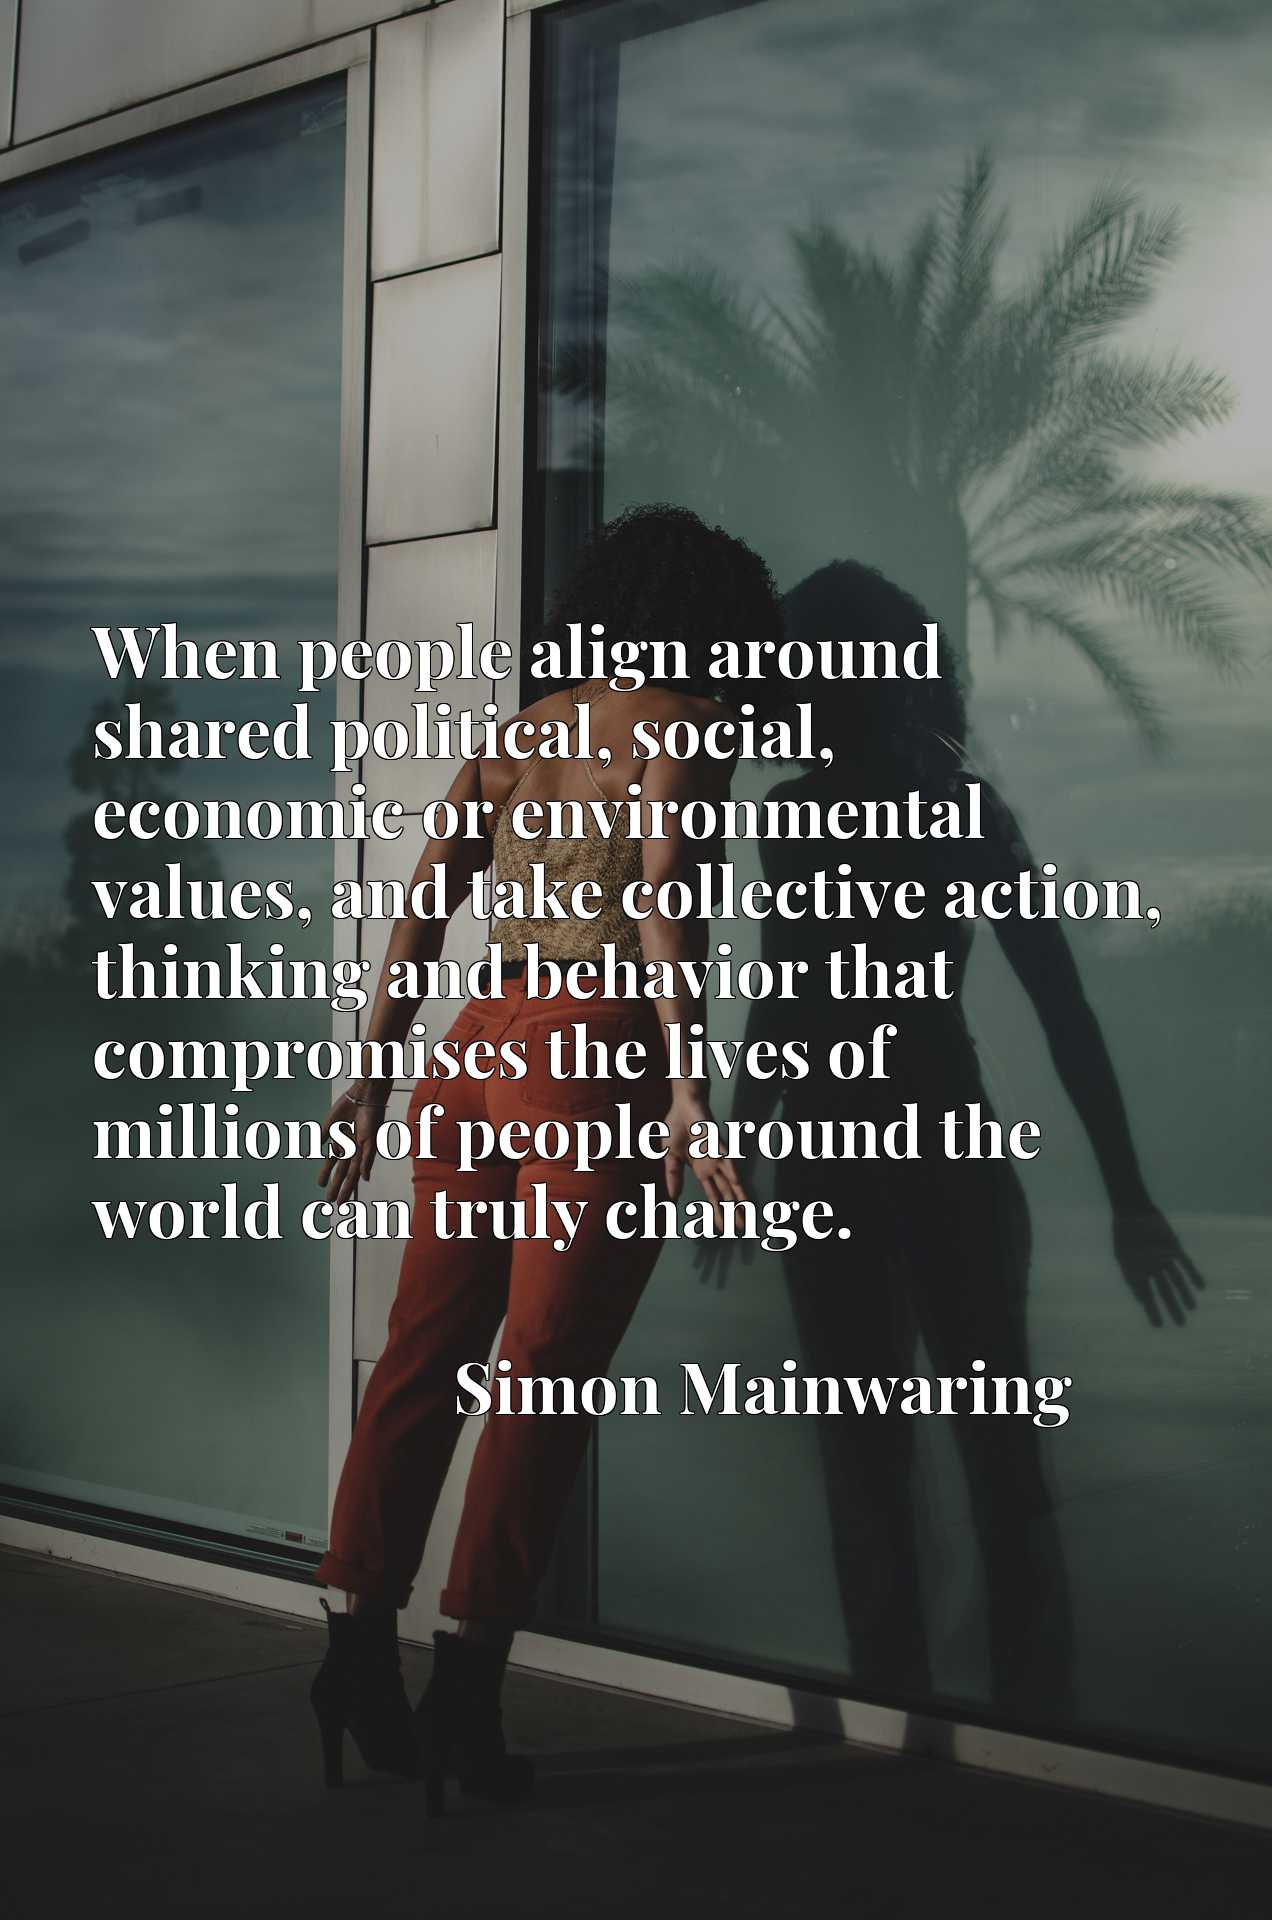 When people align around shared political, social, economic or environmental values, and take collective action, thinking and behavior that compromises the lives of millions of people around the world can truly change.